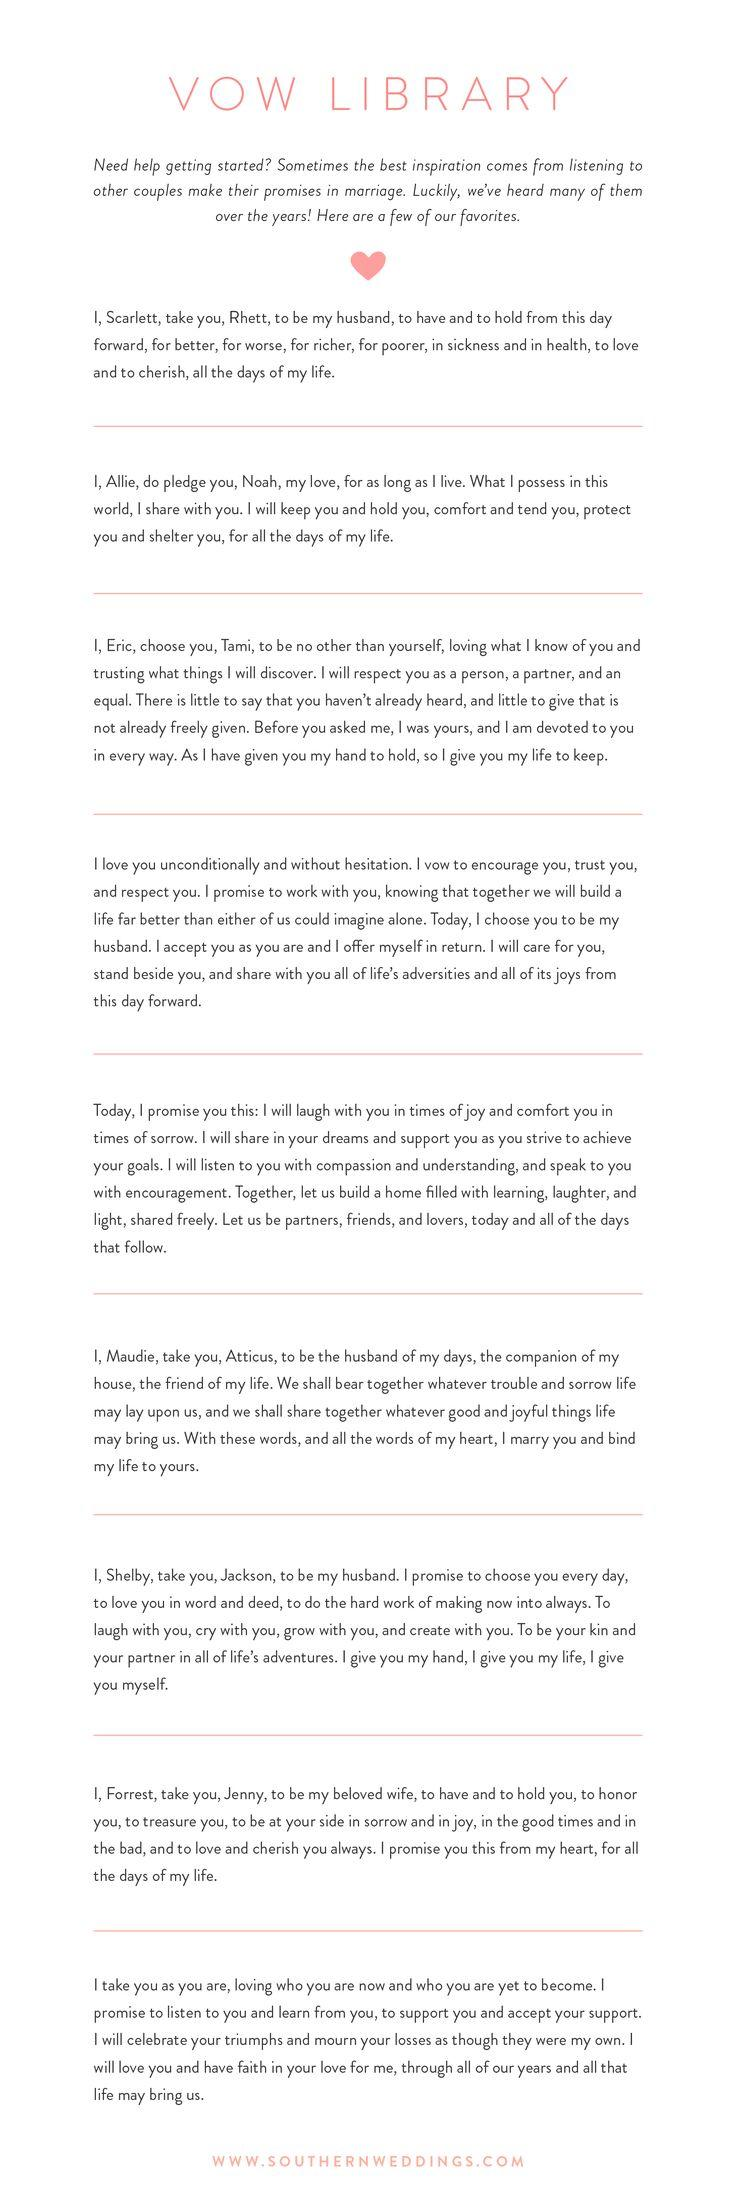 Mariage - 9 Romantic Wedding Vows